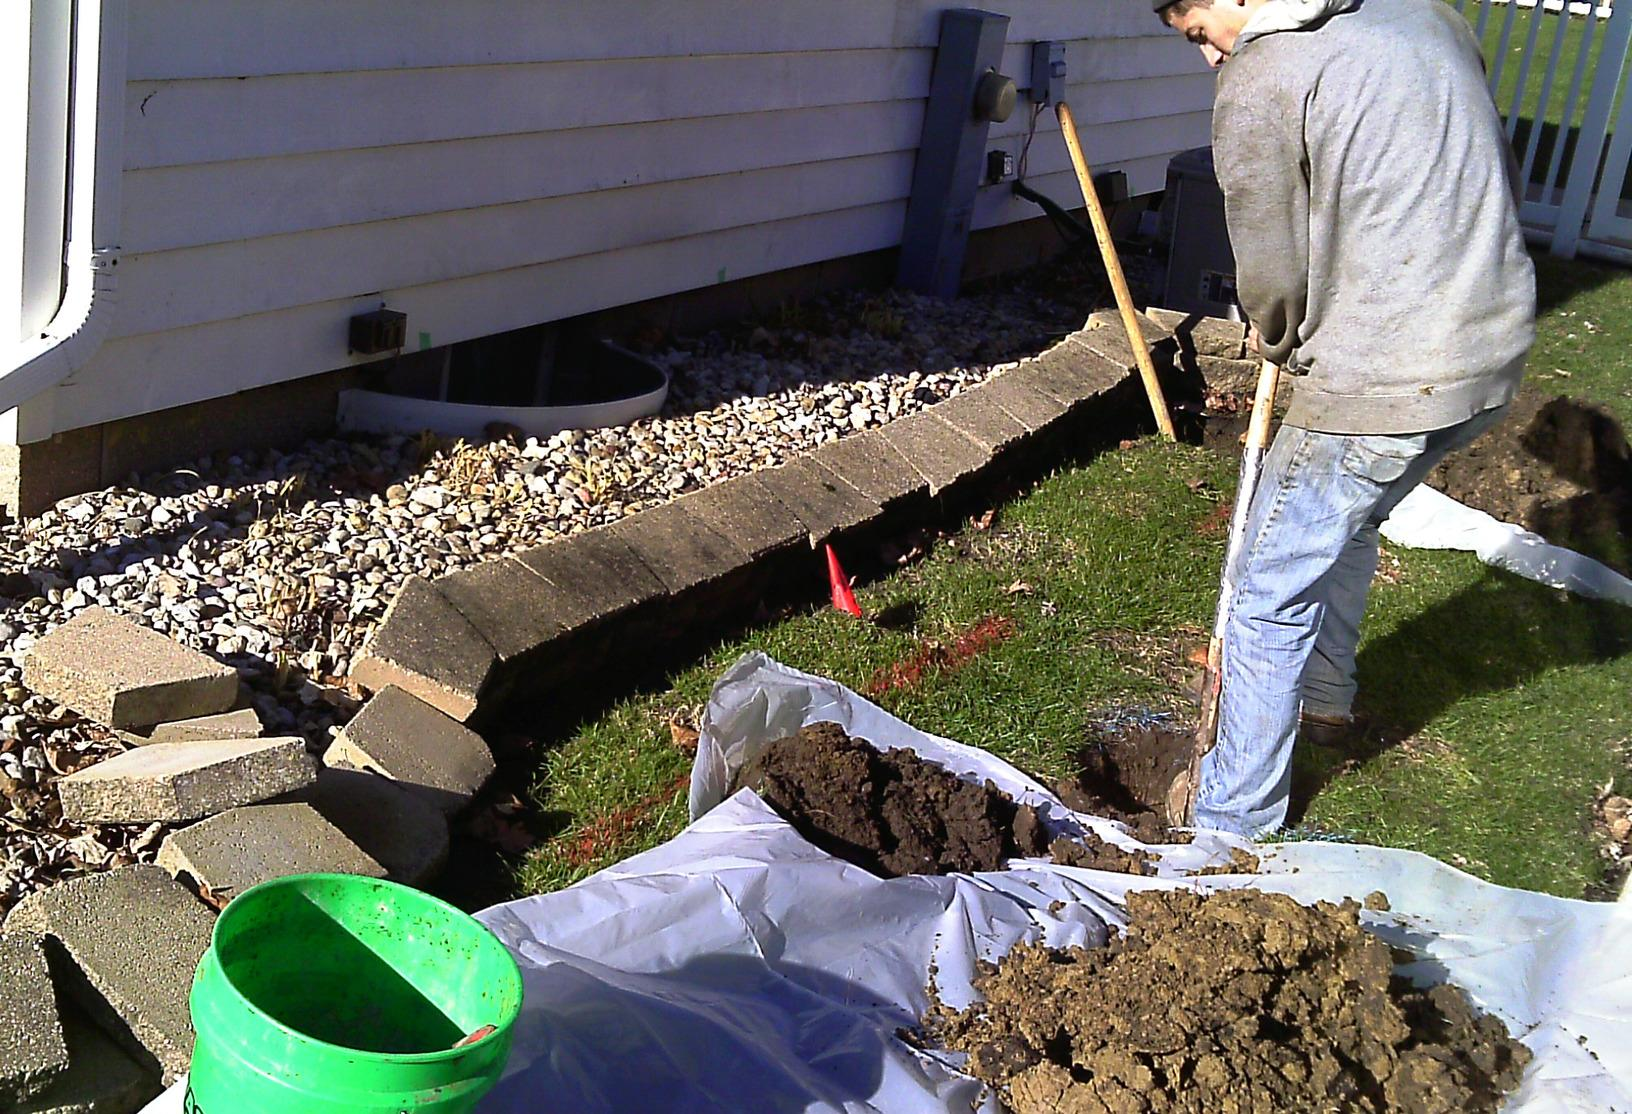 The team begins by digging small holes a few feet away from the compromised foundation to install the earth plates.